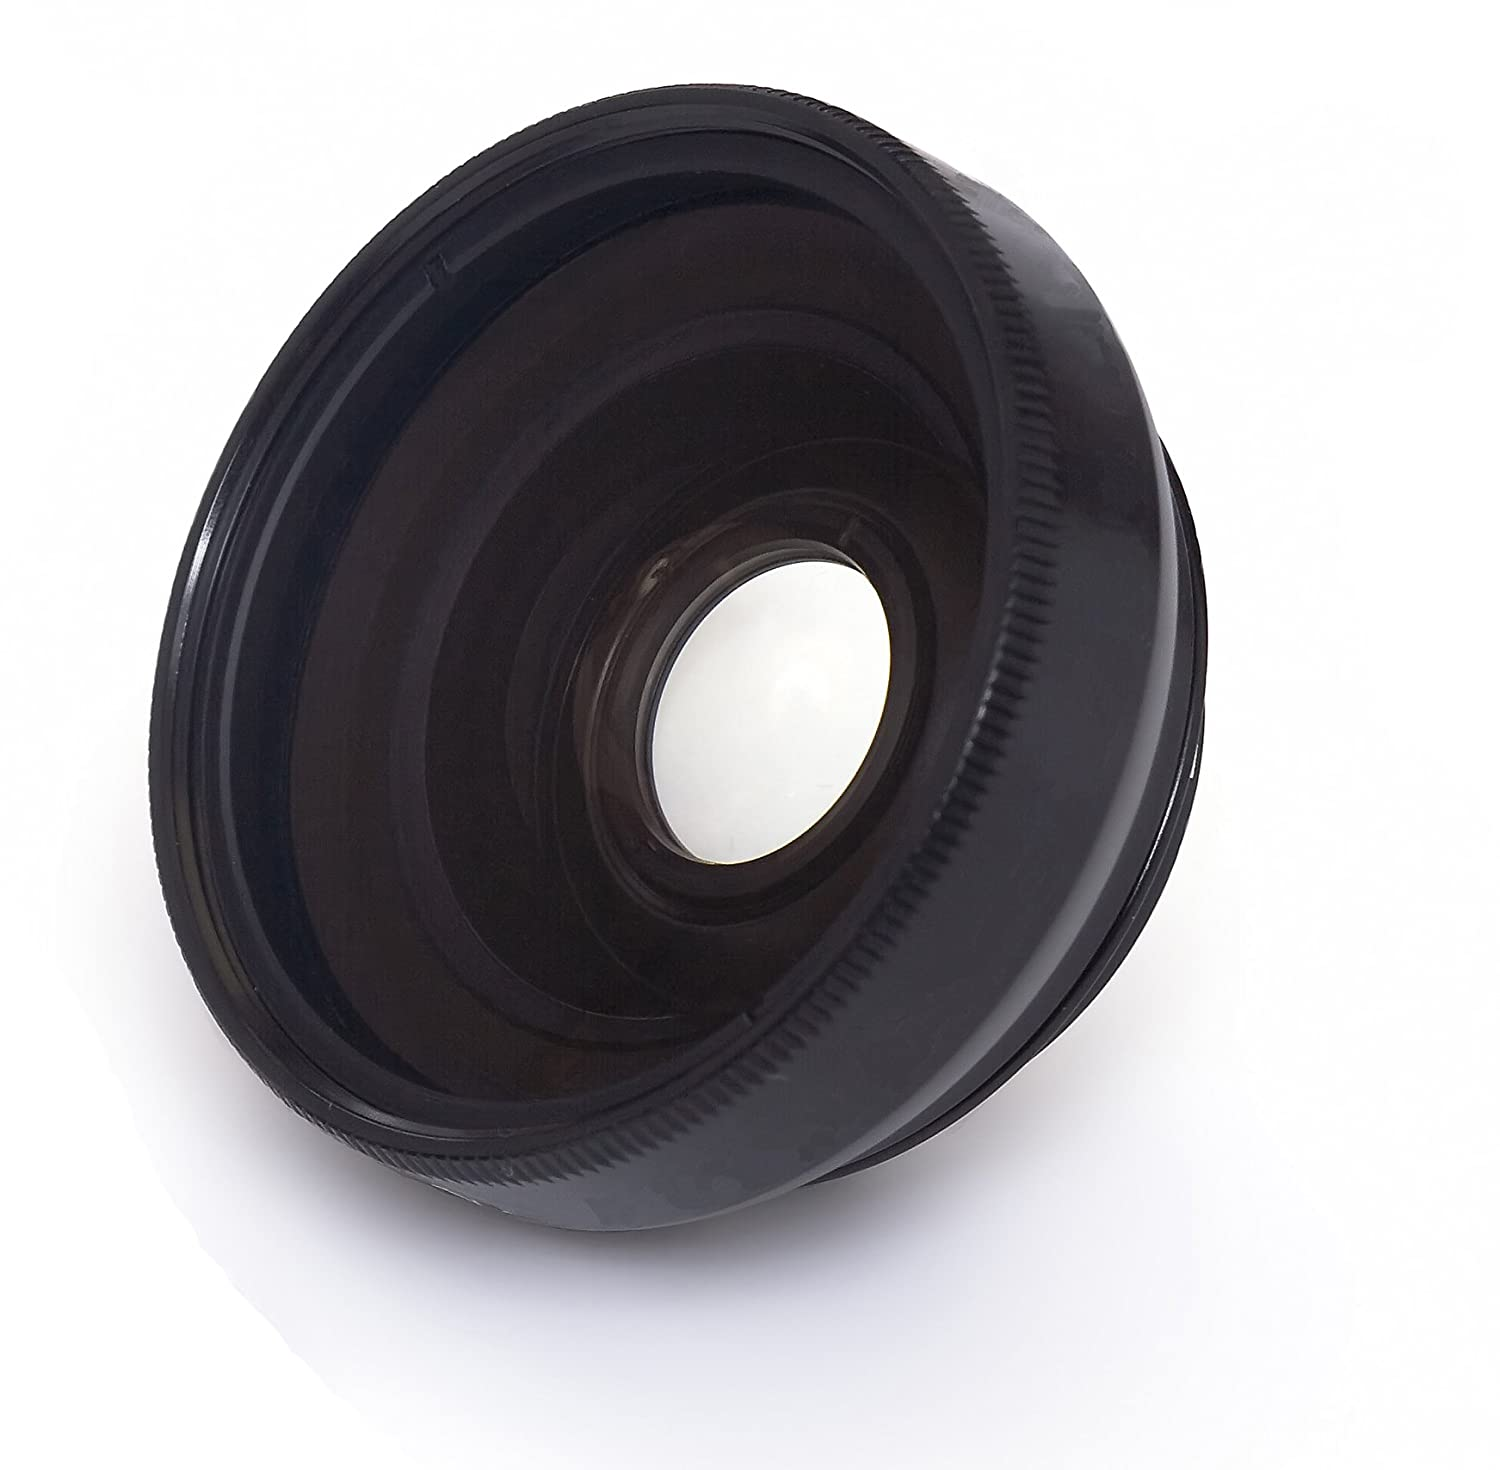 0.45x High Grade (Black) Wide Angle Conversion Lens (37mm) For Canon VIXIA HF M31 Digital Nc